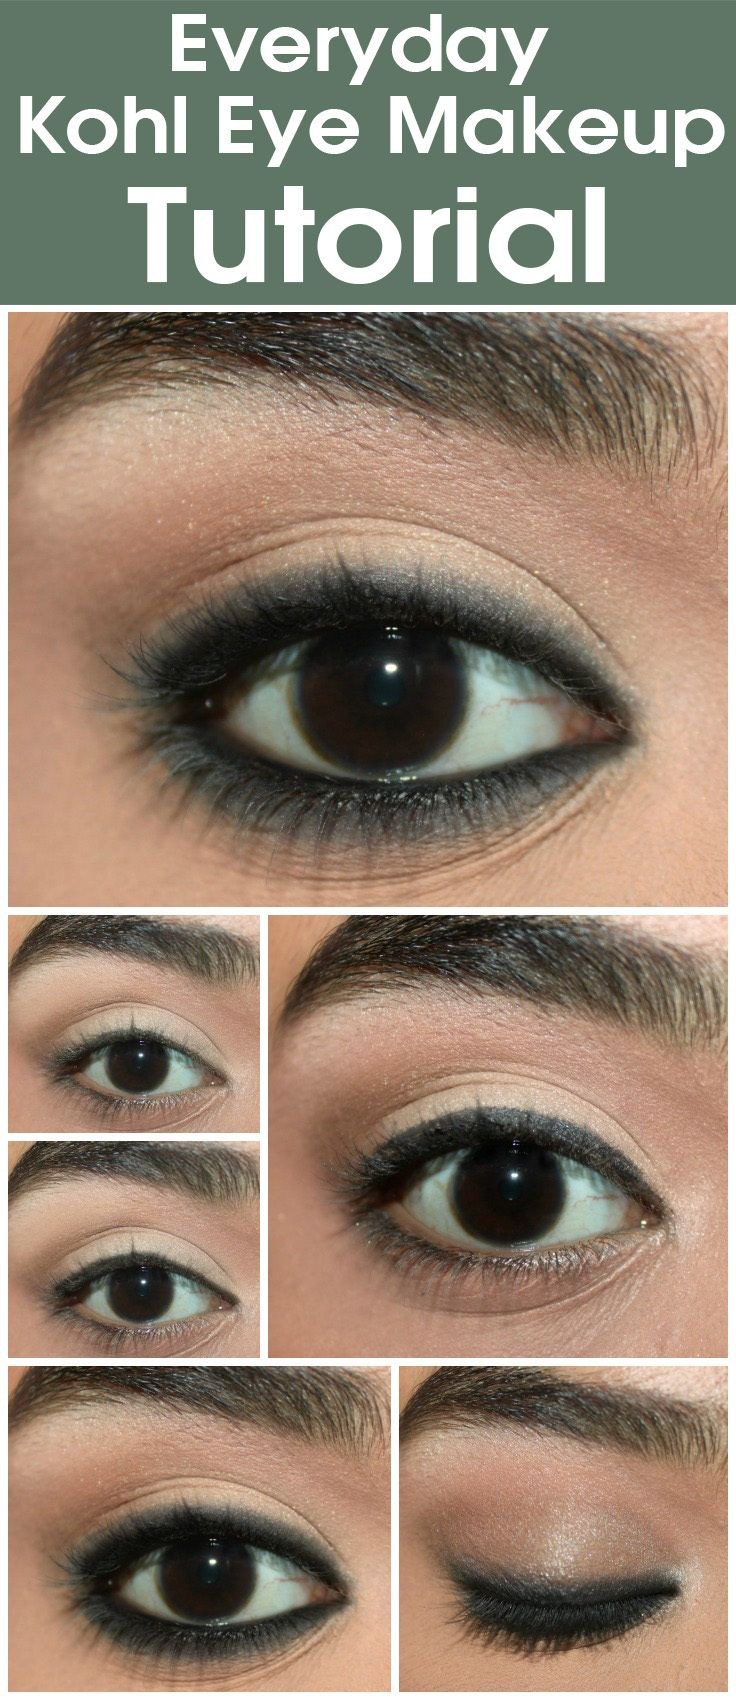 How To Apply Kajal On Eyes Perfectly Step By Step Tutorial